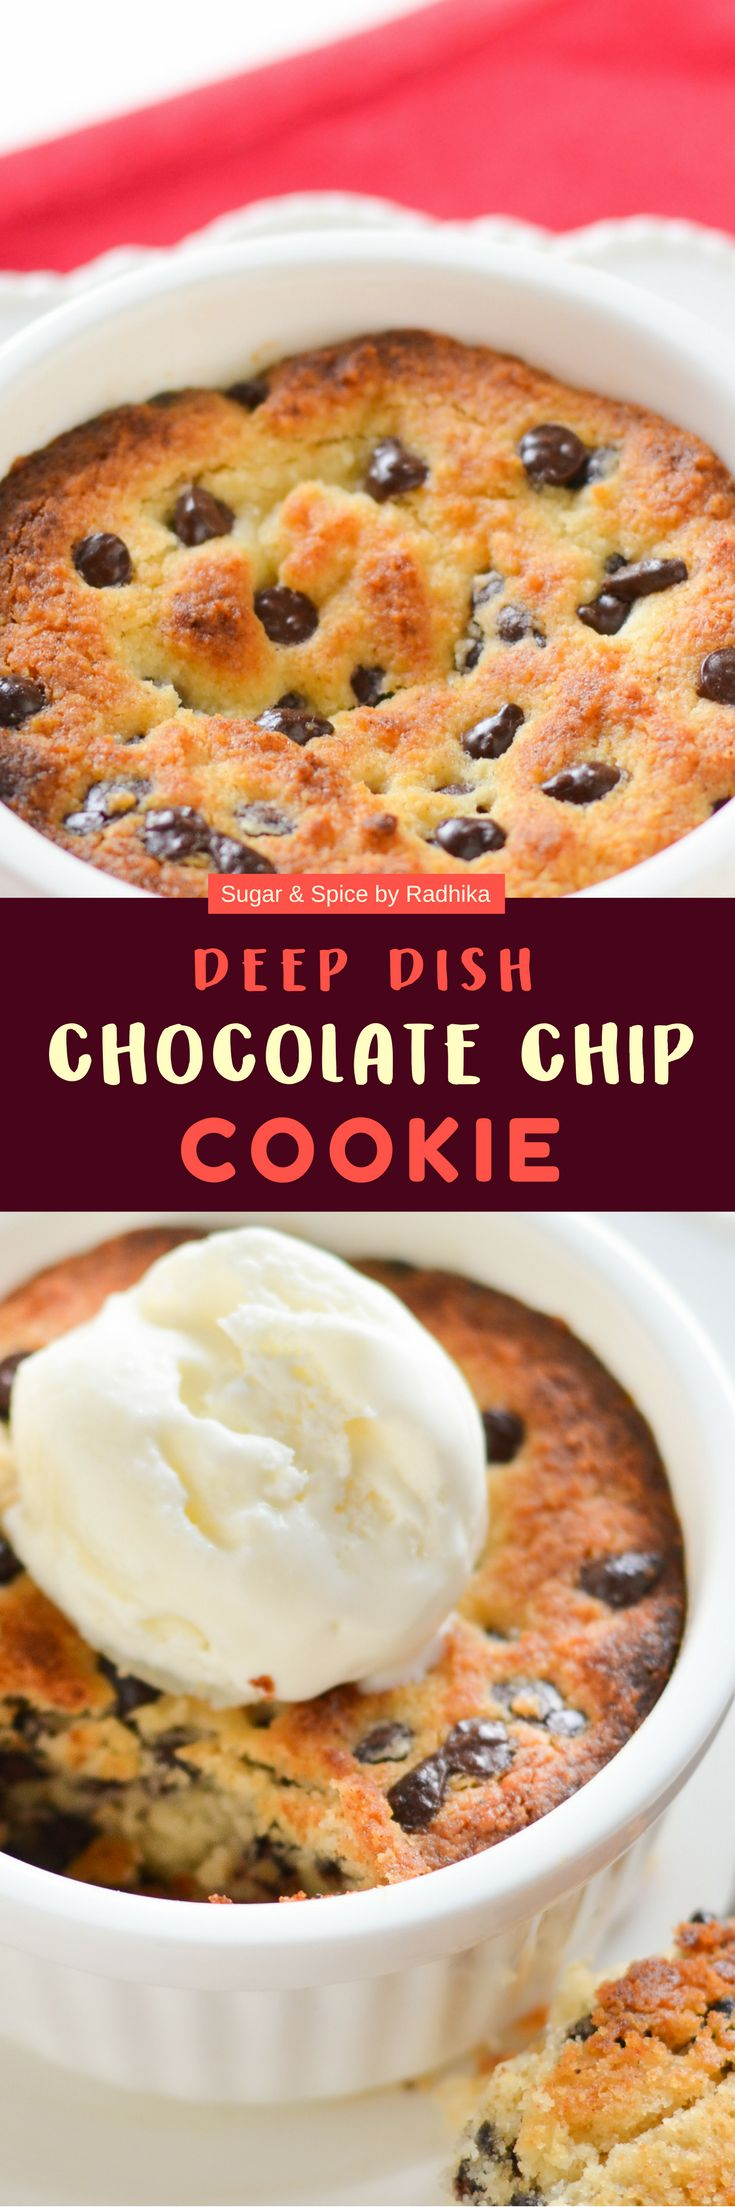 The best, most delicious, most gooey and softest #eggless Deep Dish #Chocolate #Chip #Cookie made in less than 25 minutes.#cookies #chocochip #recipe #deepdish #eggless #dessert #forone